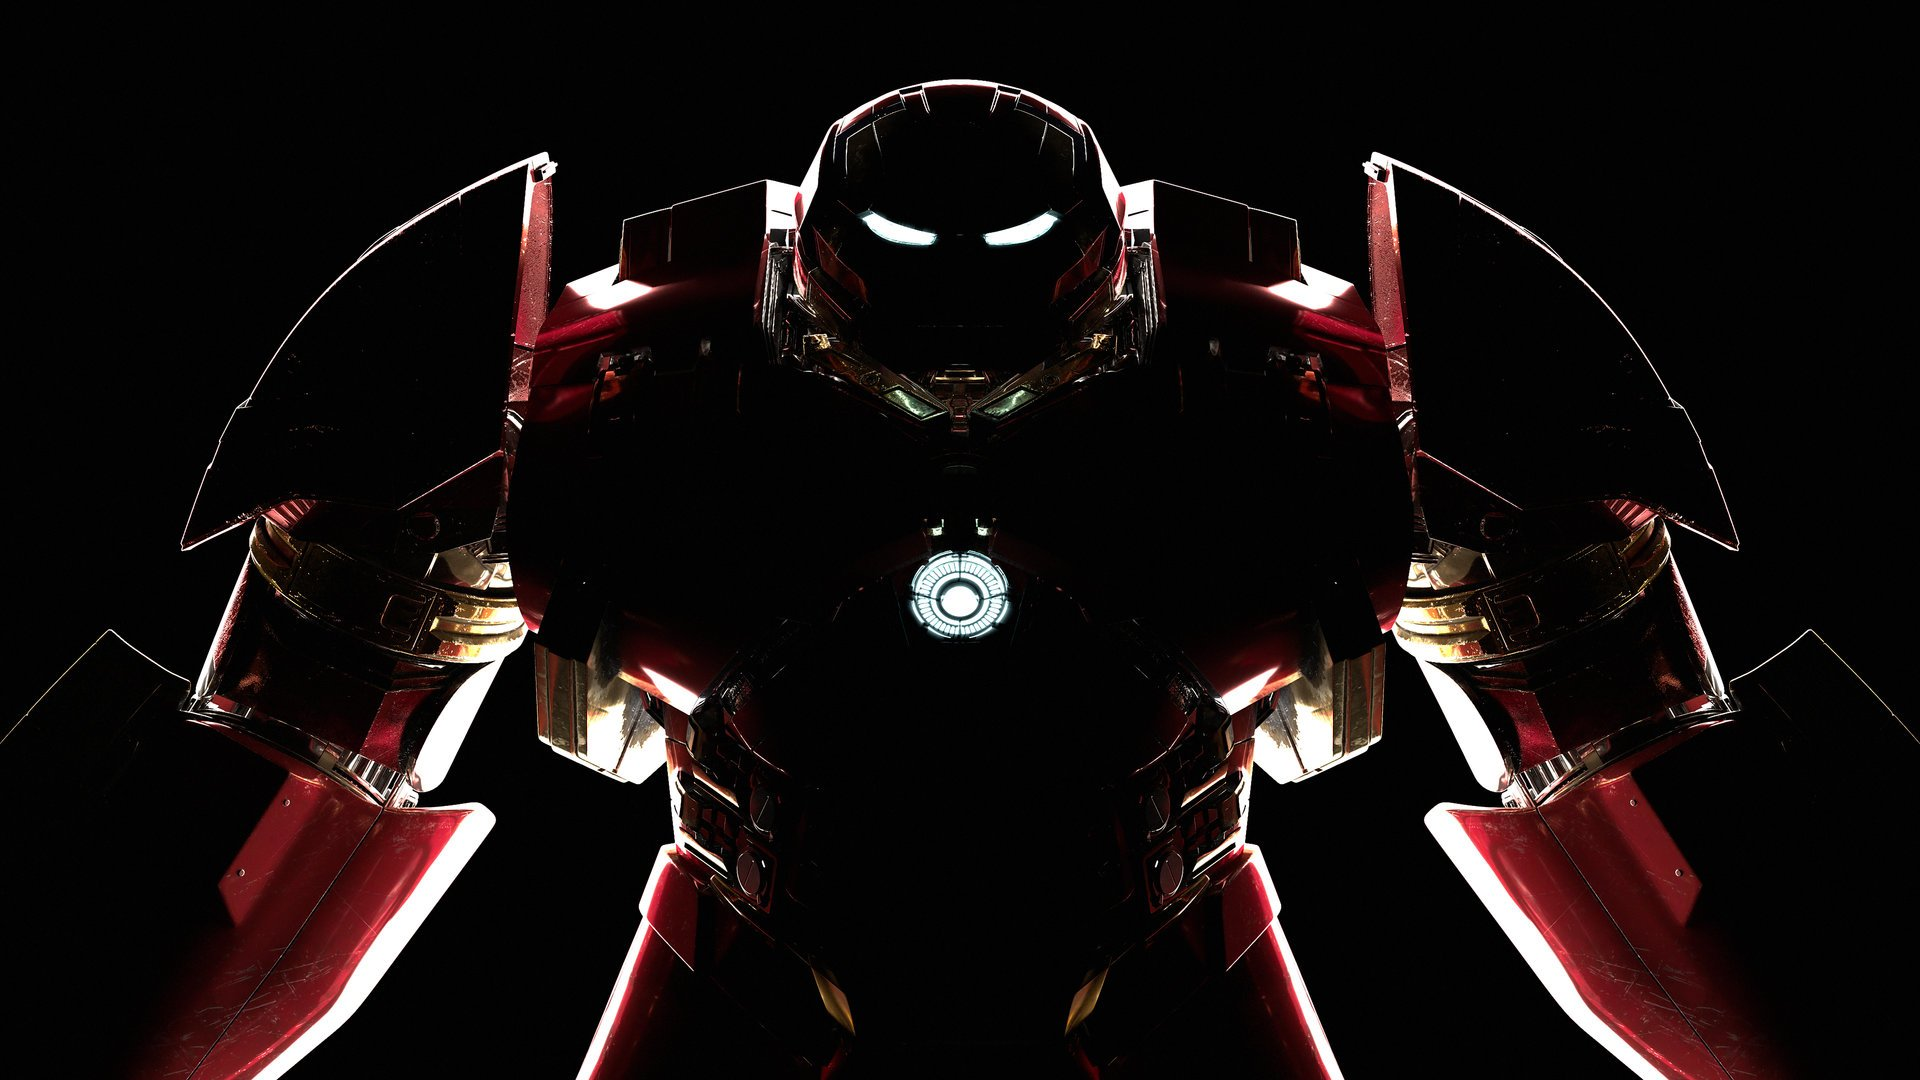 Movie Wallpapers 1 Epic Heroes Gallery 33 X Cool Hd Images Sci Fi